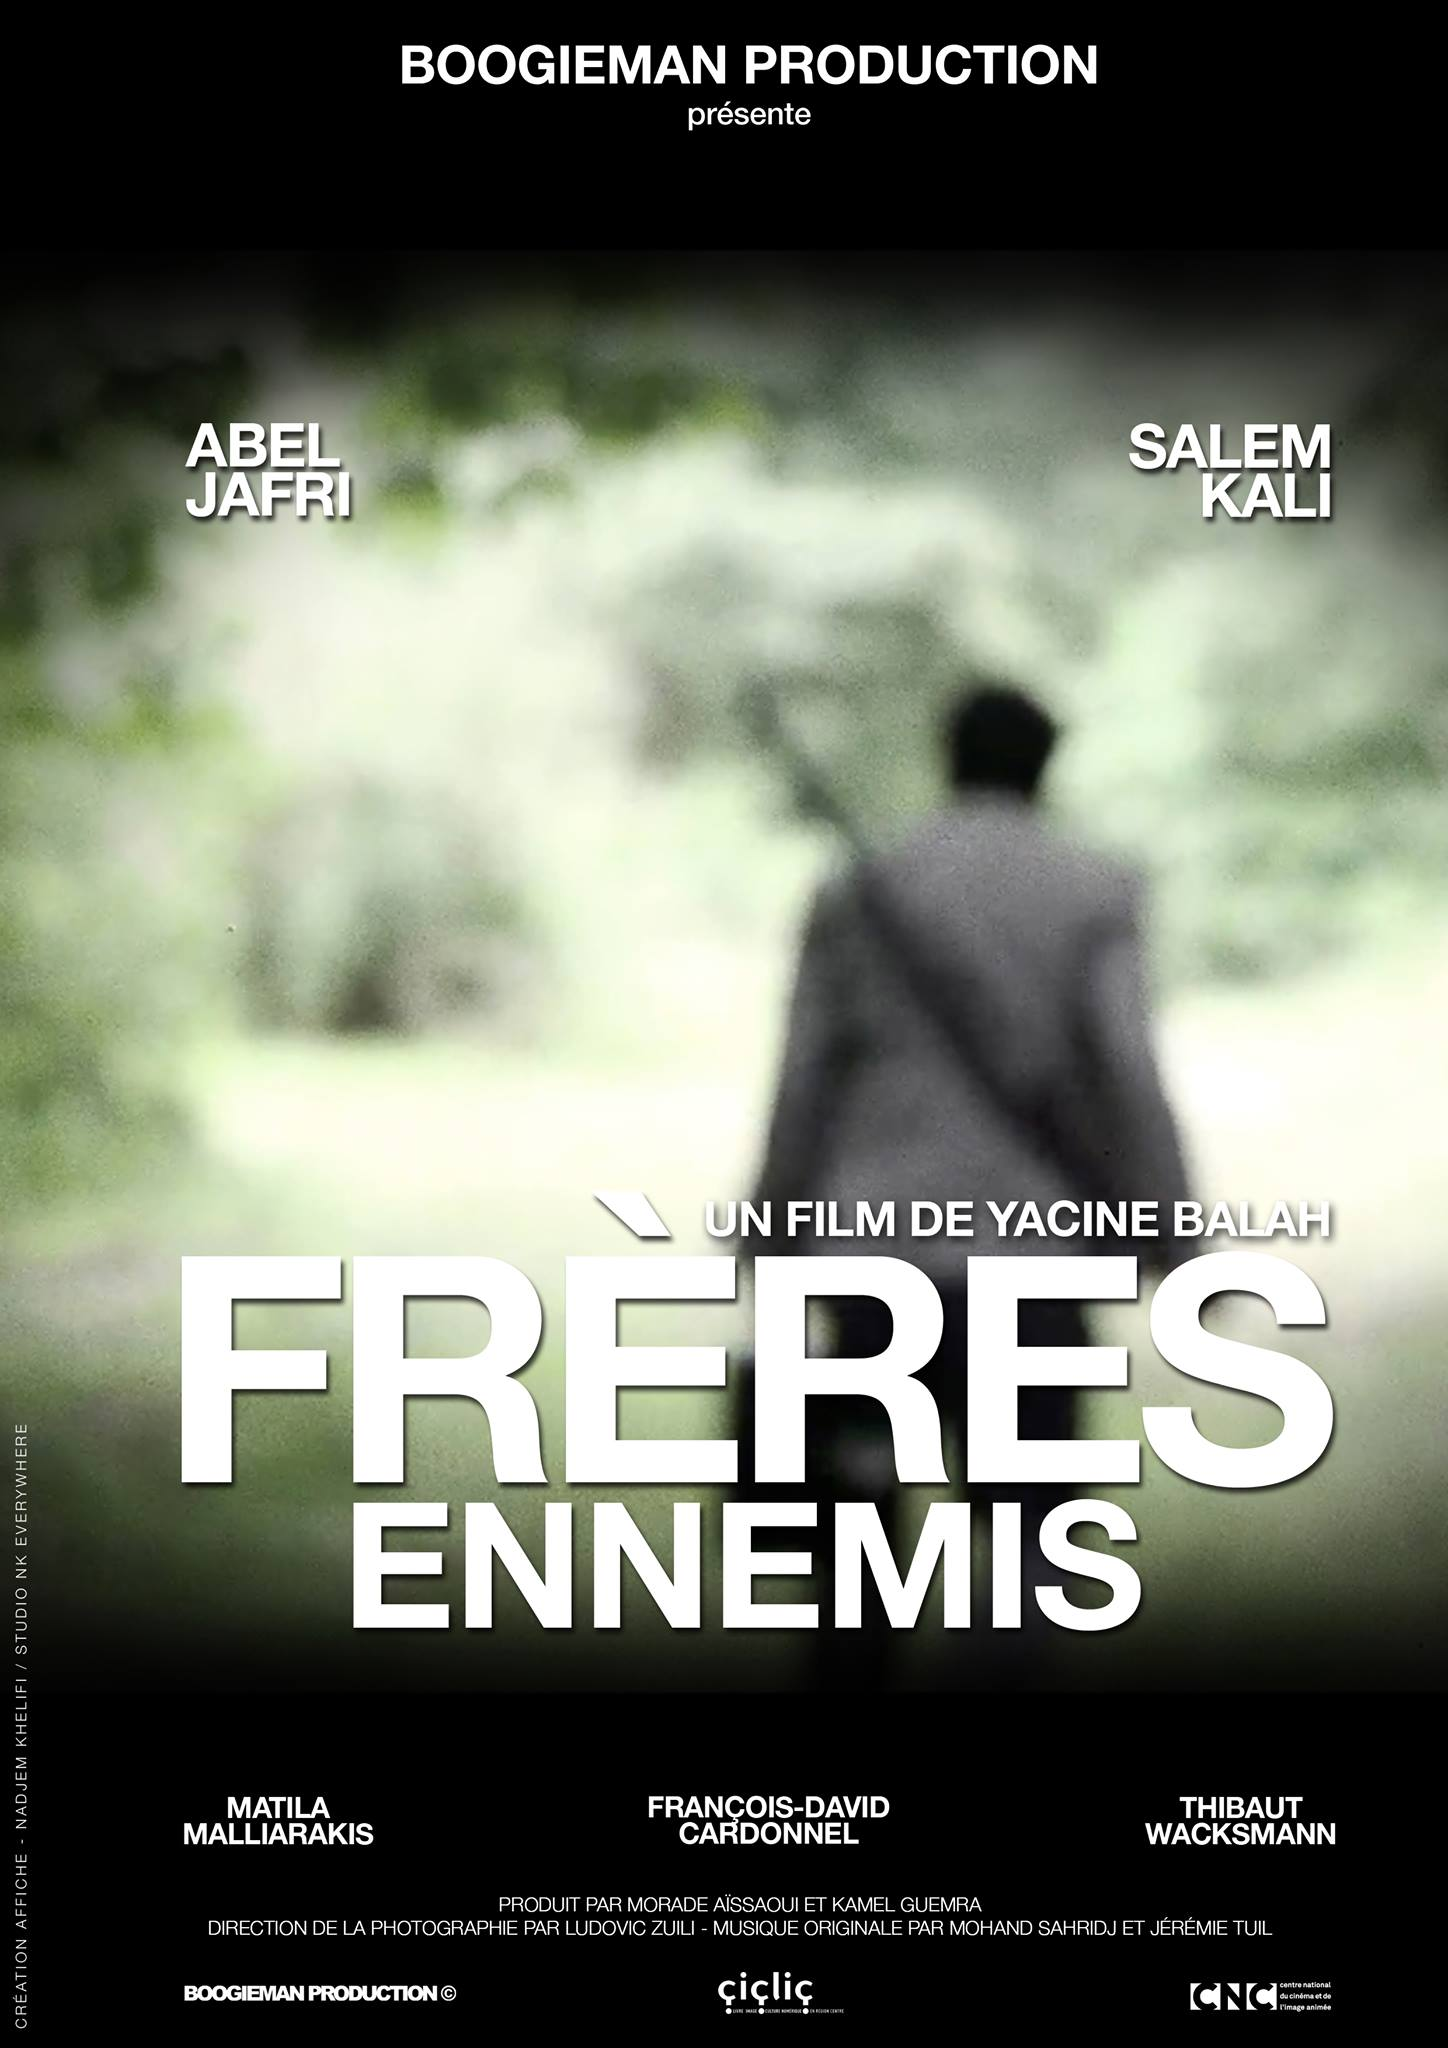 FRERES ENNEMIS, Brings To Life A History Long Forgotten